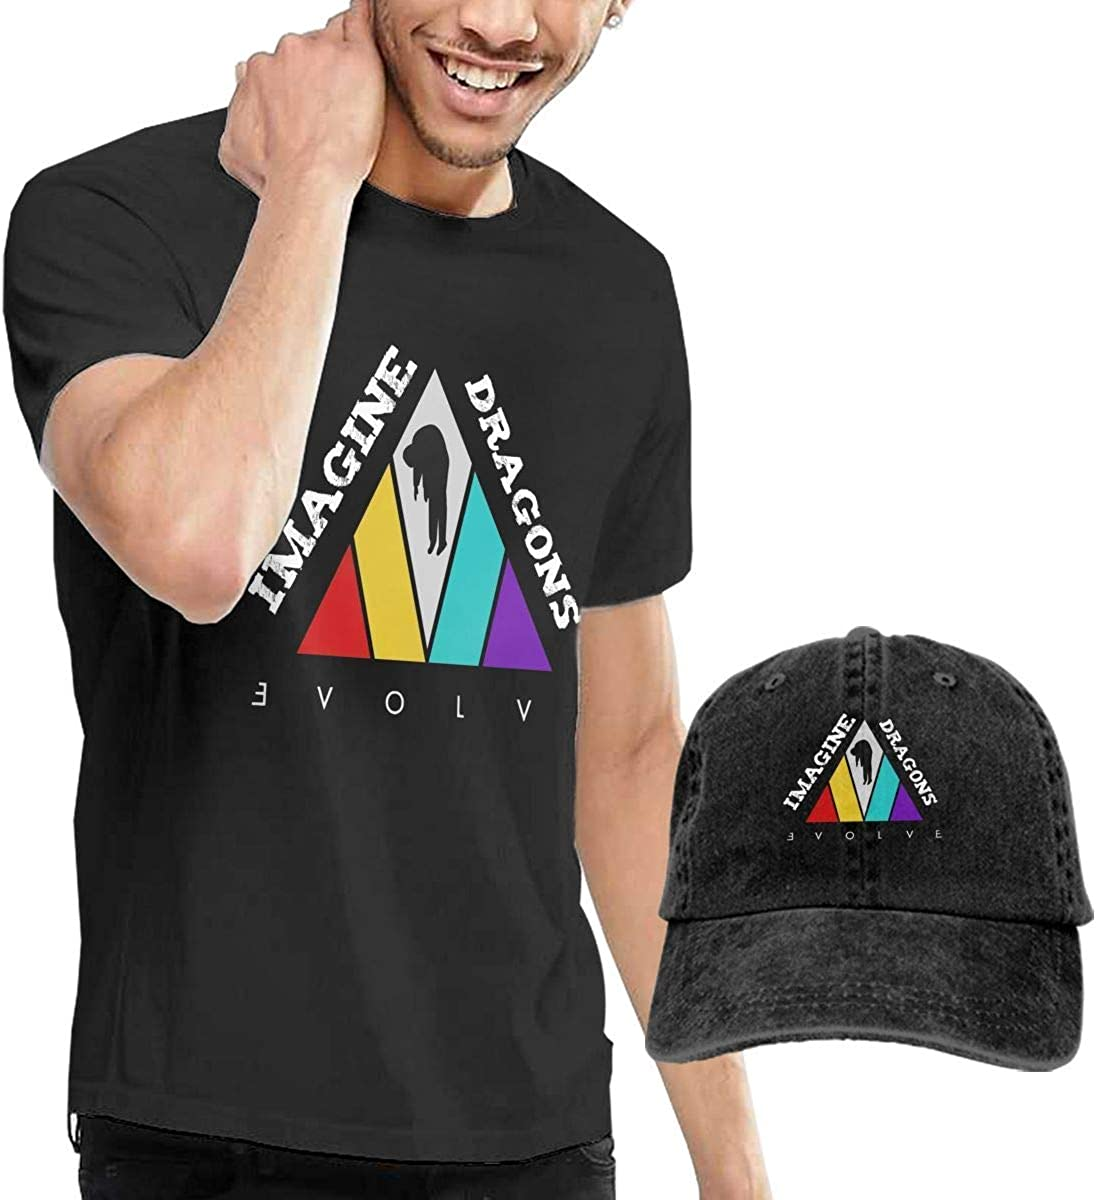 SOTTK Camisetas y Tops Hombre Polos y Camisas,t-Shirts, Tees, Imagine-Dragons-Evolve Mens Cotton T-Shirt with Round Collar with Adjustable Baseball ...